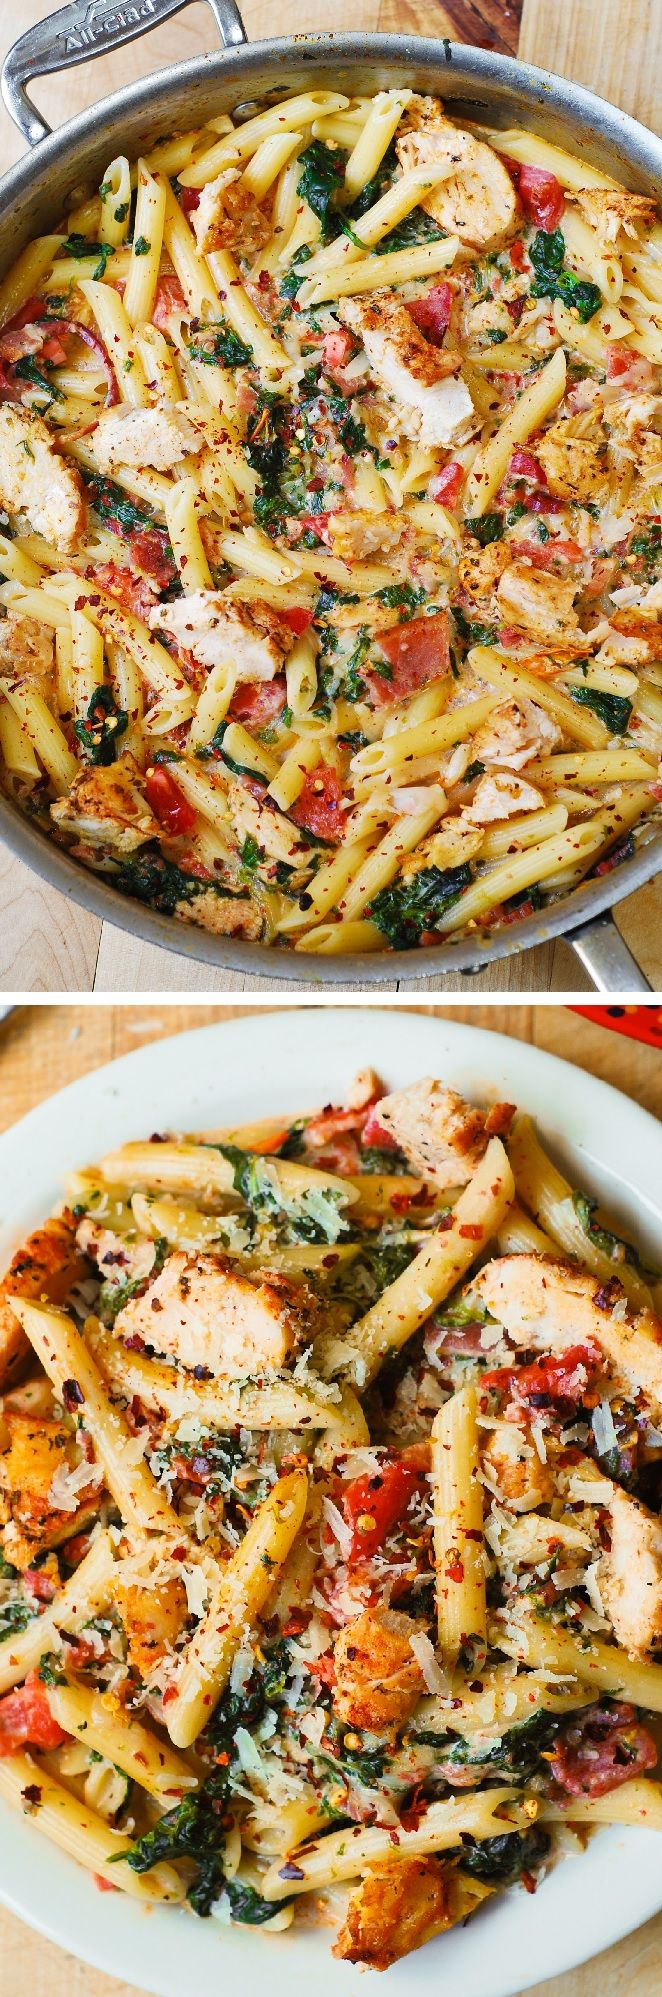 Chicken and Bacon Pasta with Spinach and Tomatoes in Garlic Cream Sauce – delicious creamy sauce perfectly blends together all the flavors: bacon, garlic, spices, tomatoes. (chicken dinner ideas) JuliasAlbum.com #chicken #dinner #recipe